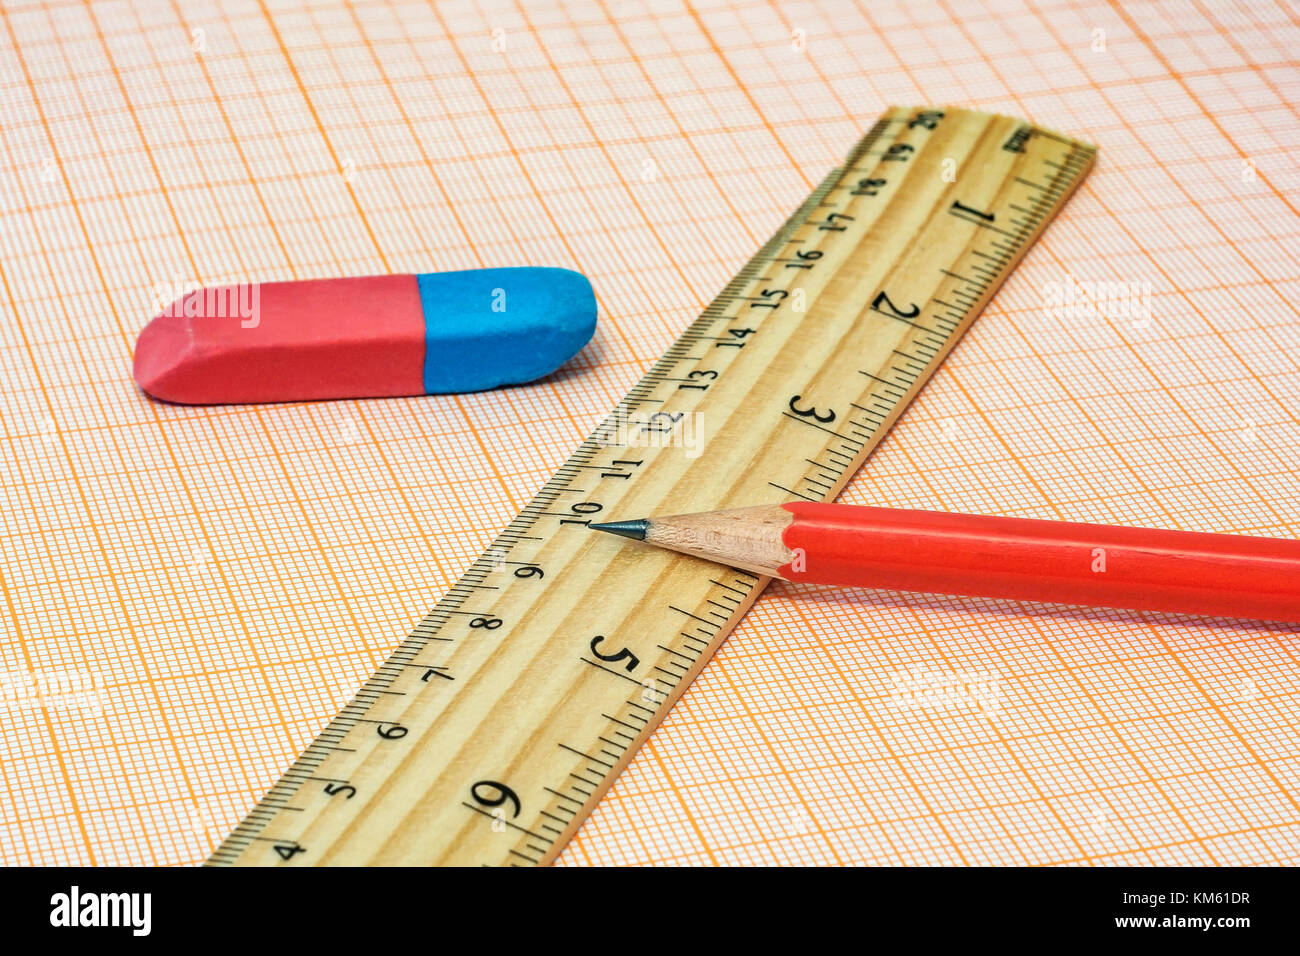 On the millimeter paper lie an eraser with a ruler and a simple pencil close-up - Stock Image